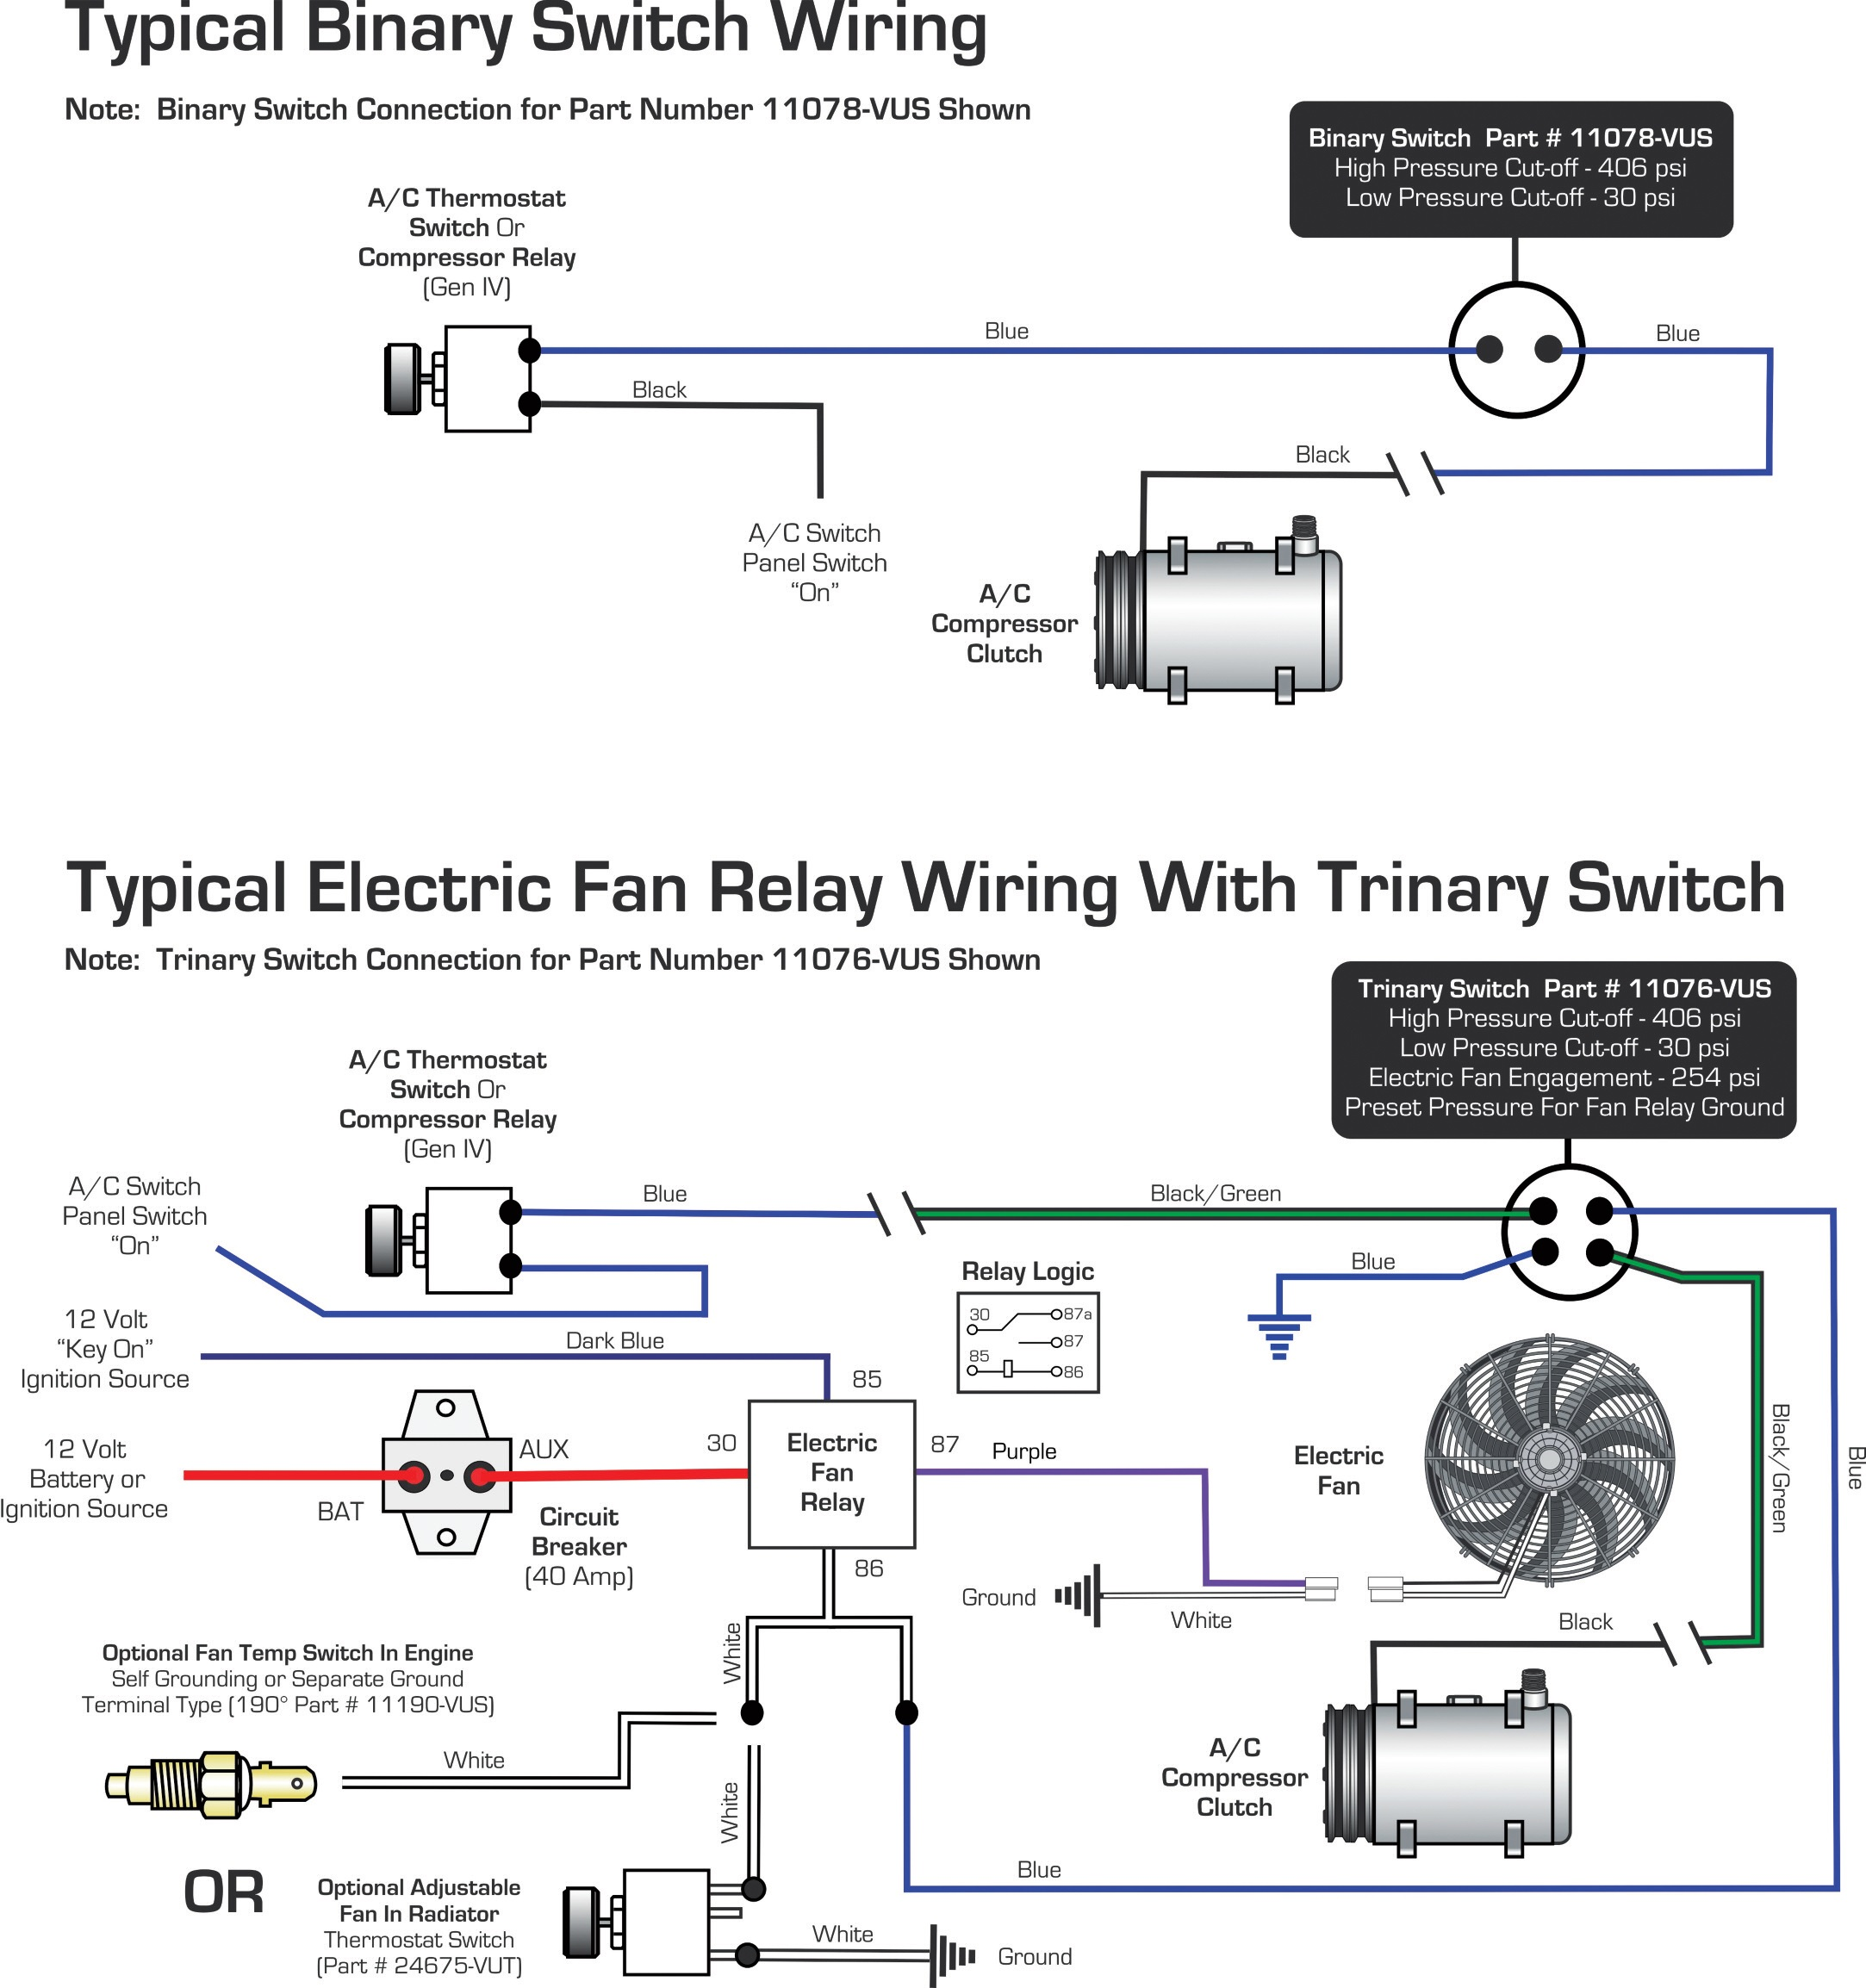 1 80 vintage air blog archive wiring diagrams binary switch trinary binary switch wiring diagram at nearapp.co